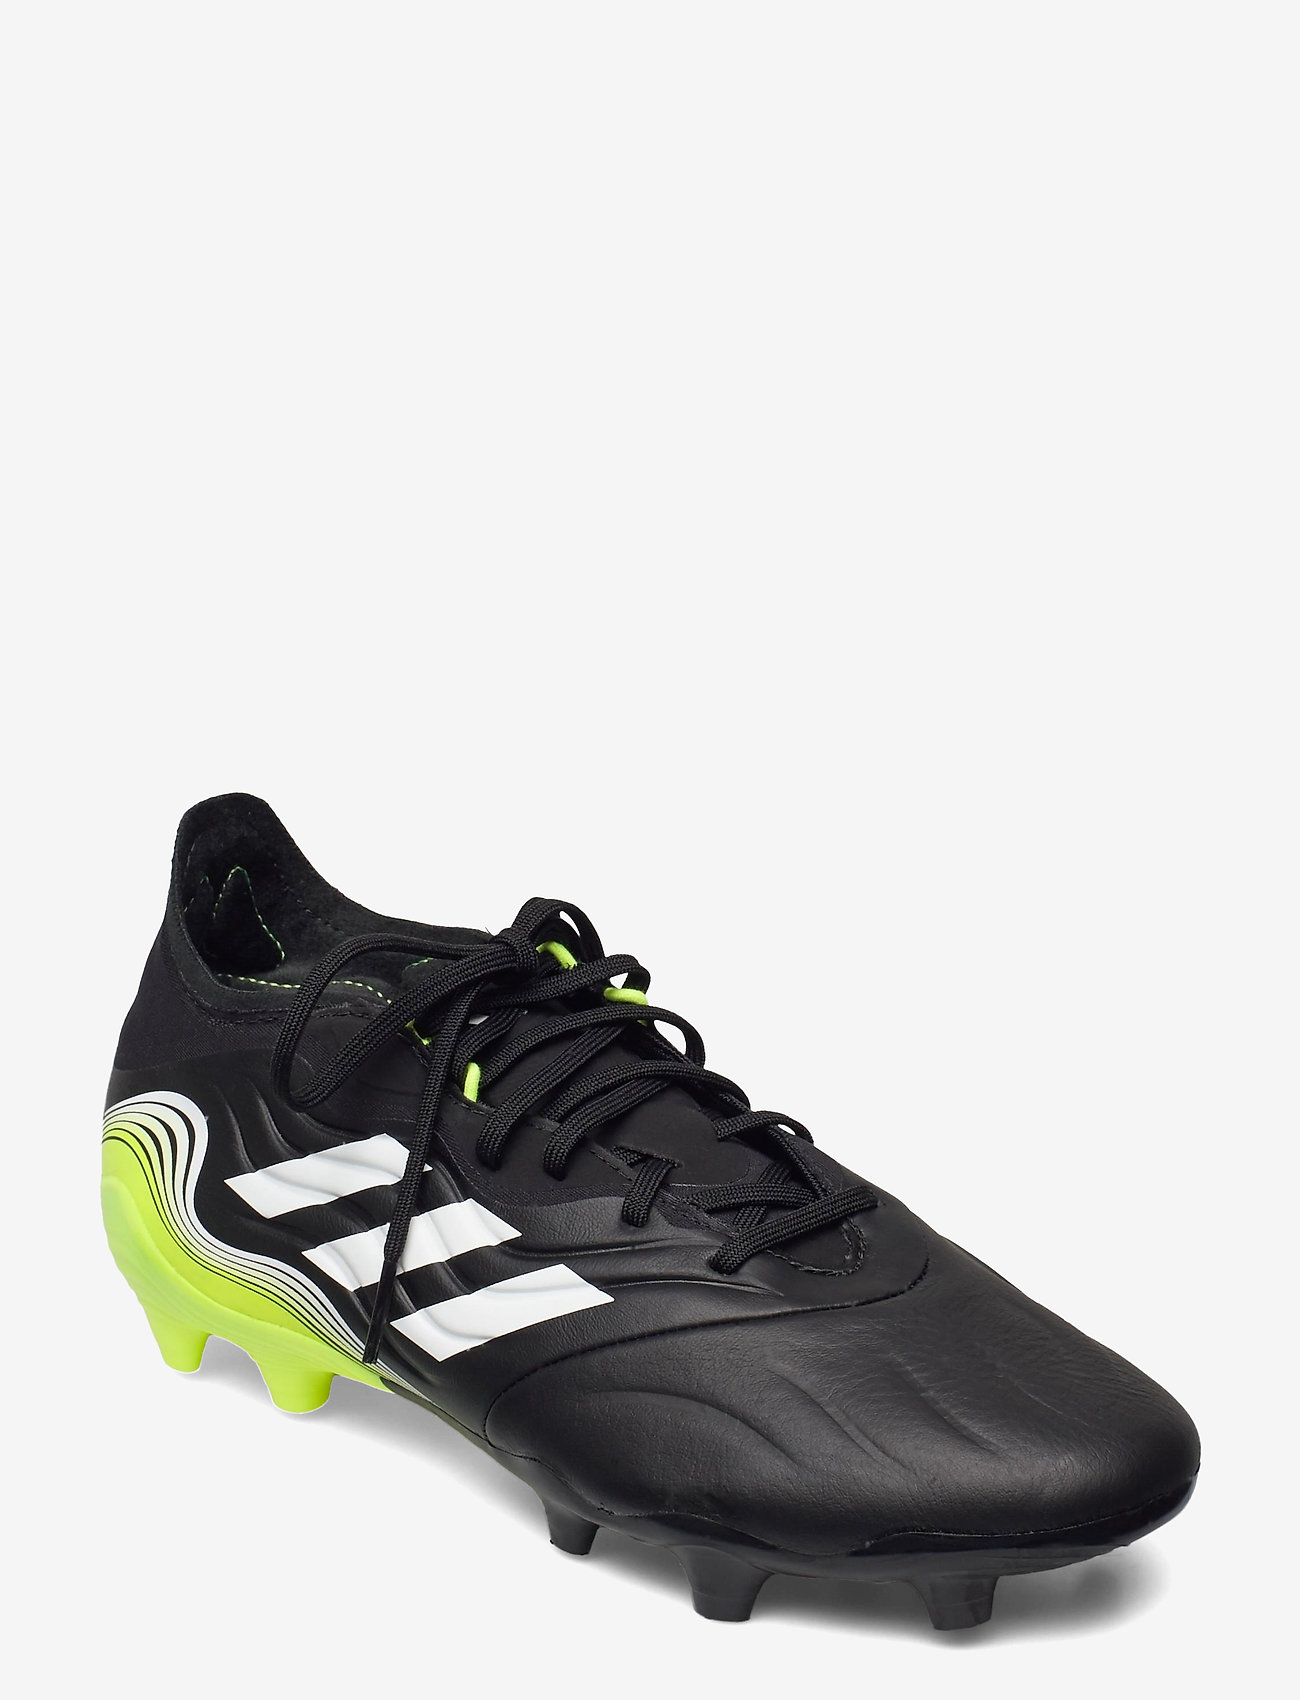 adidas Performance - Copa Sense.2 Firm-Ground Boots - fotballsko - cblack/ftwwht/syello - 0